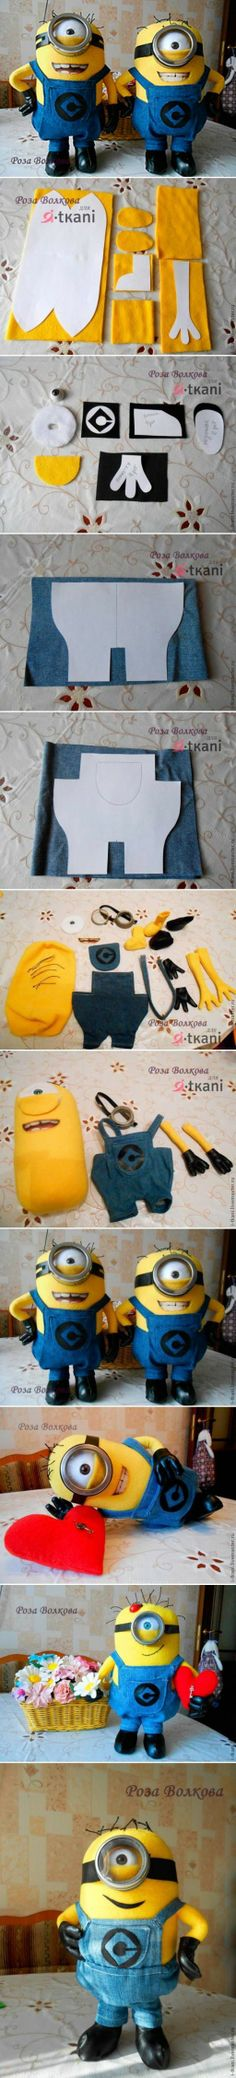 How to make Minion toy Doll step by step DIY tutorial instructions | How To Instructions